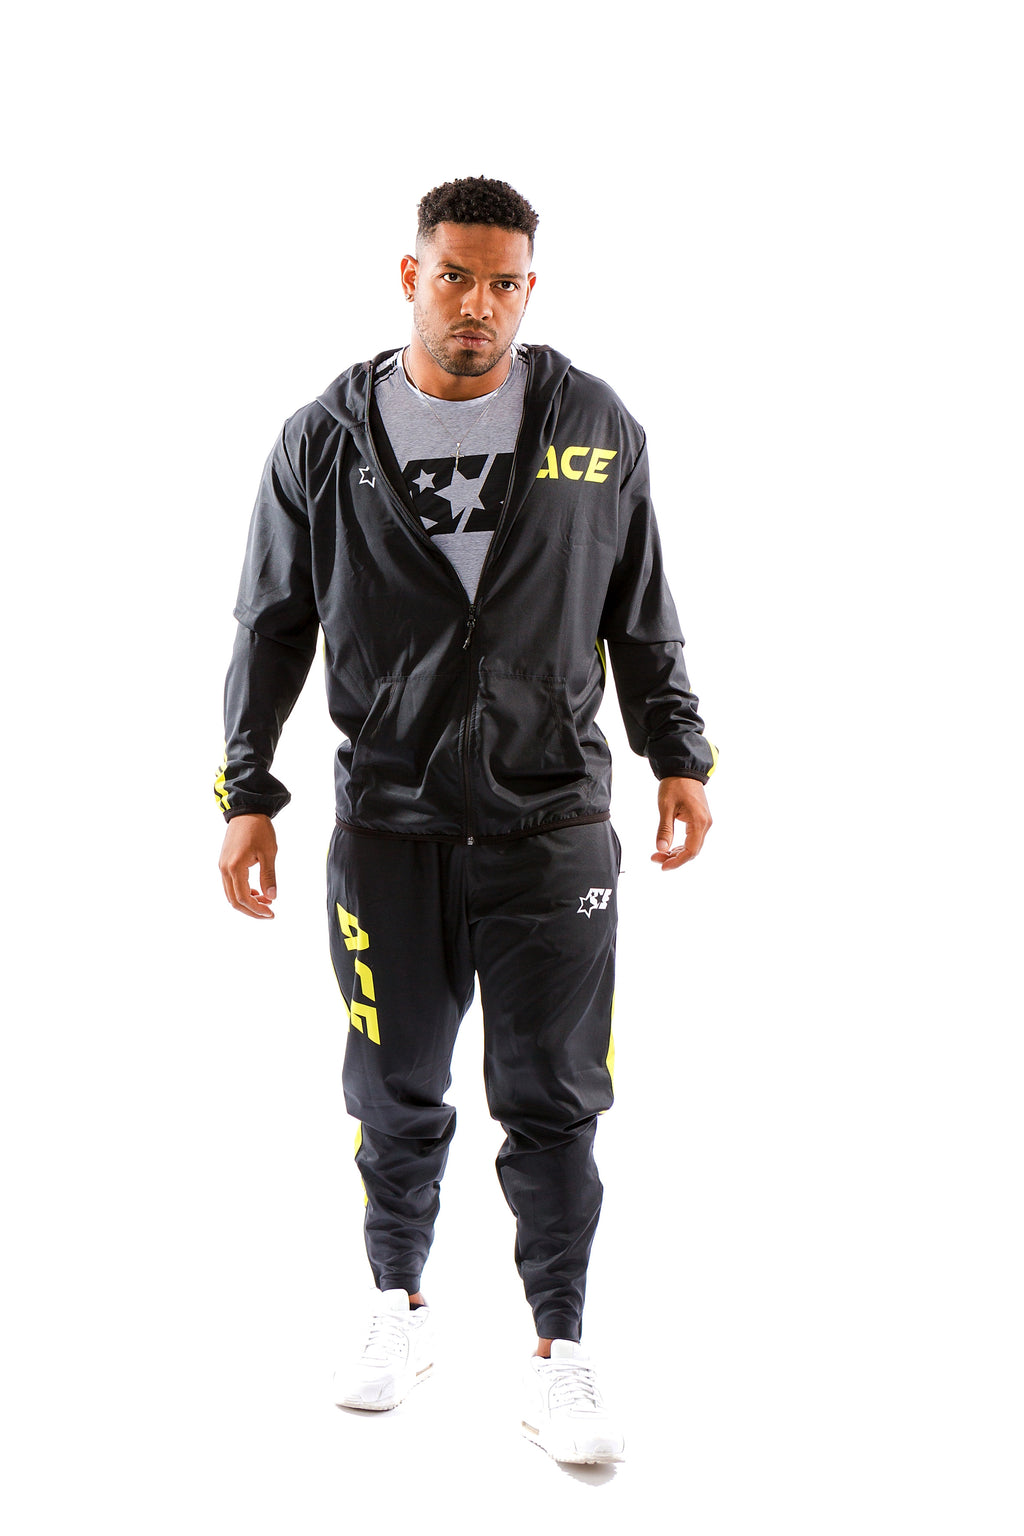 ULTRA LIGHT TRAINING SUIT - ACE BLACK GREEN - ACEPERFORMANCE